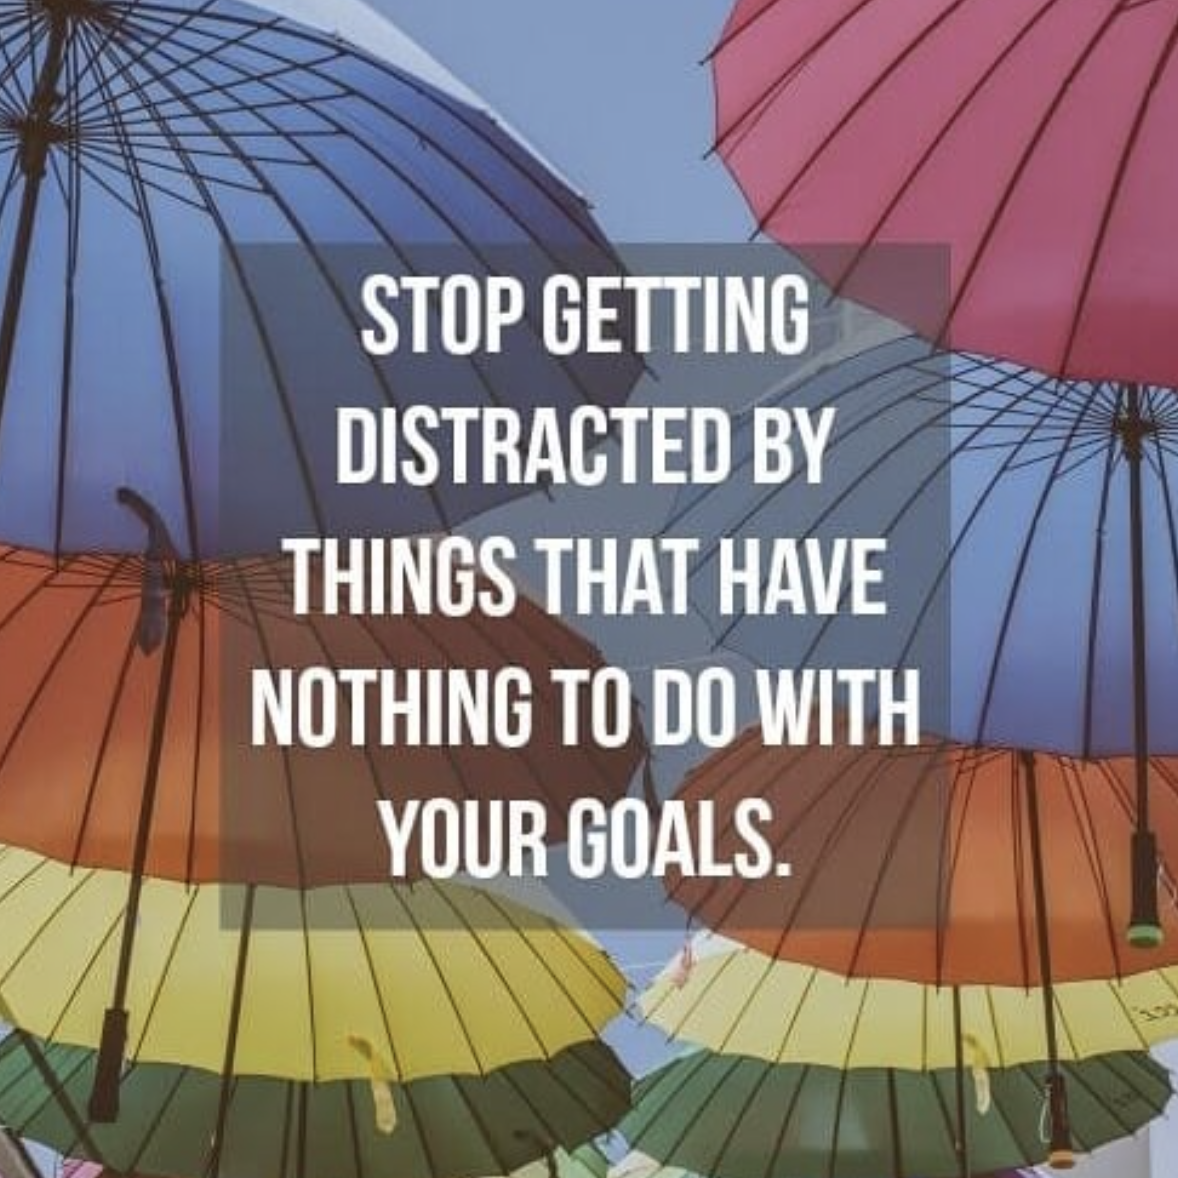 [Image] Stop getting distracted by things that have nothing with your goals.